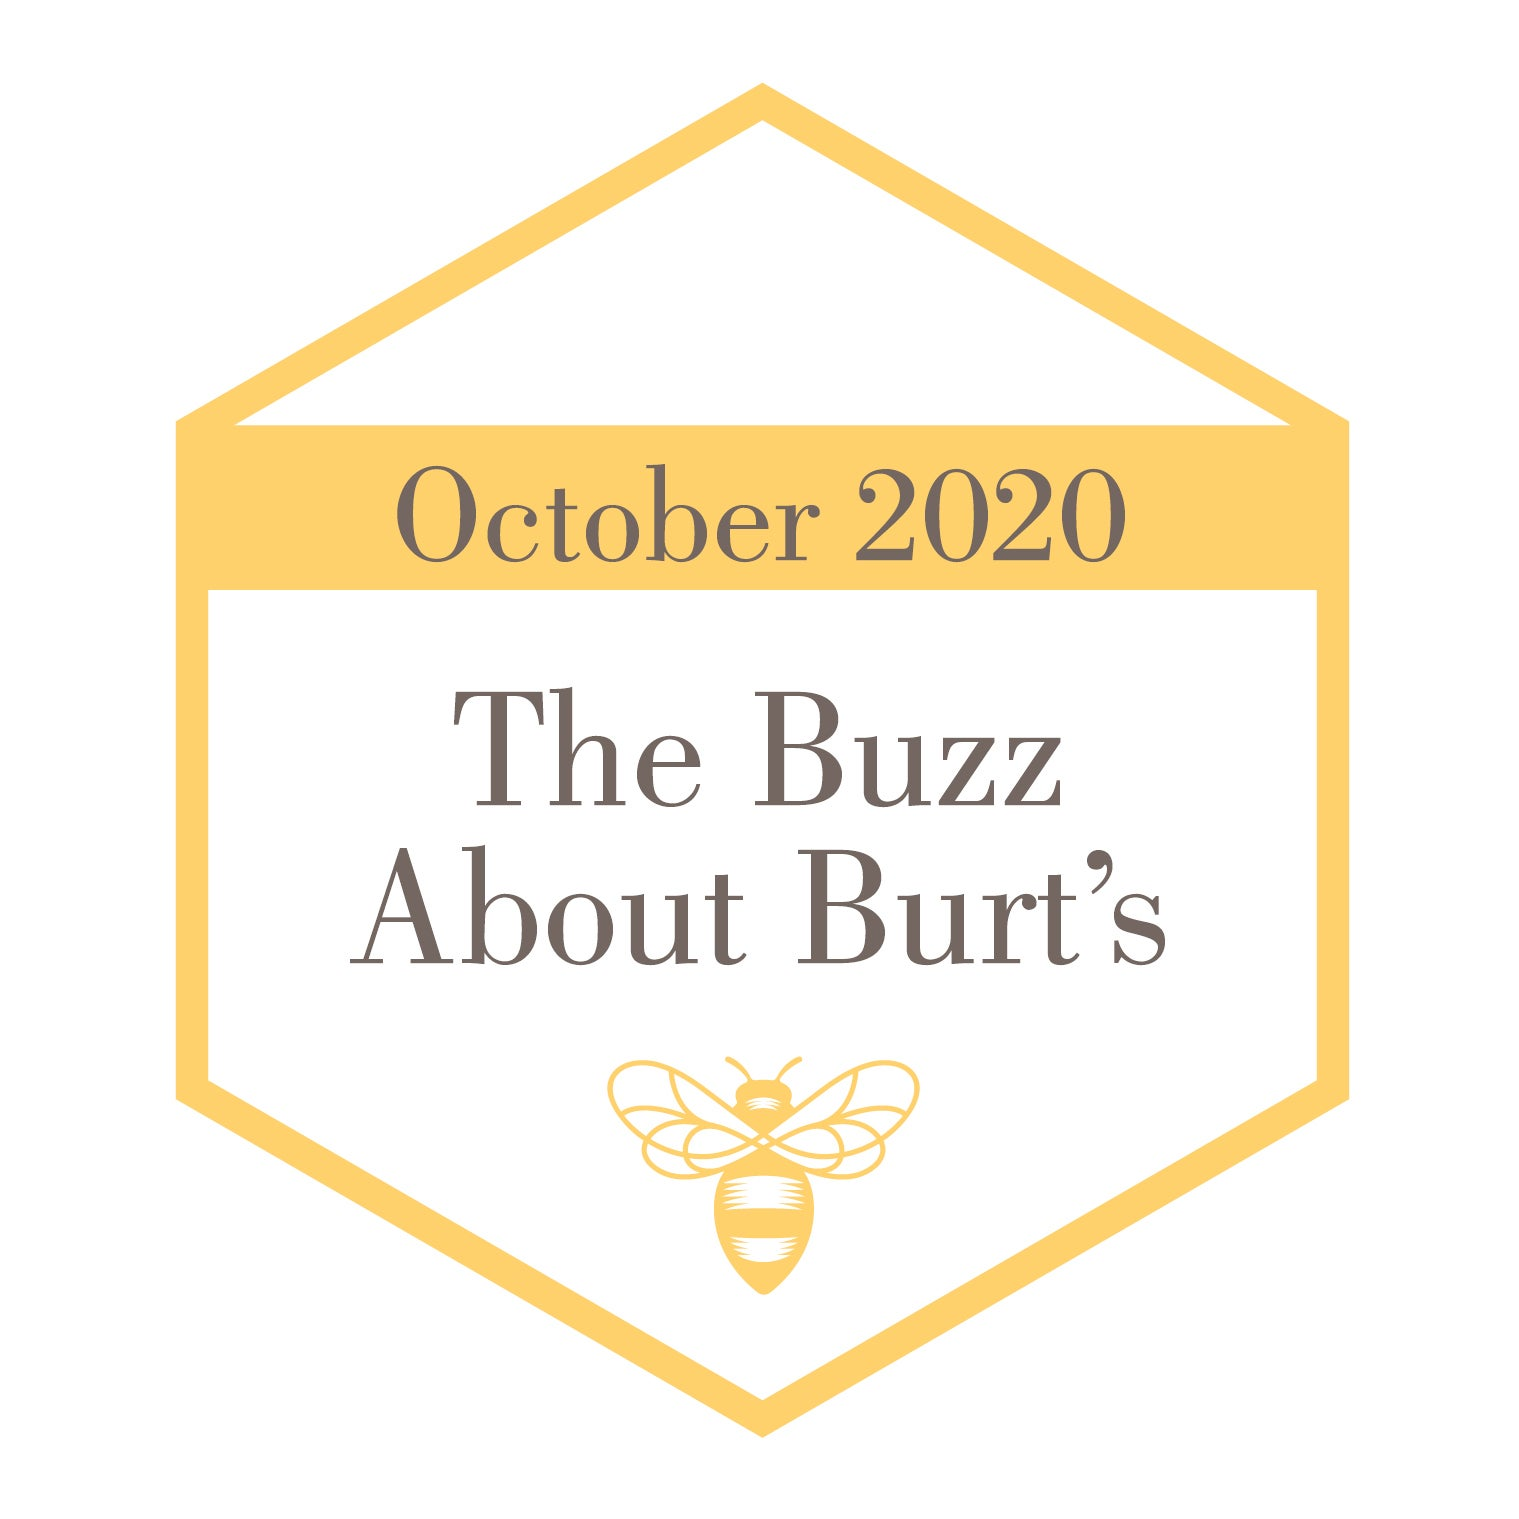 The Buzz About Burt's - October